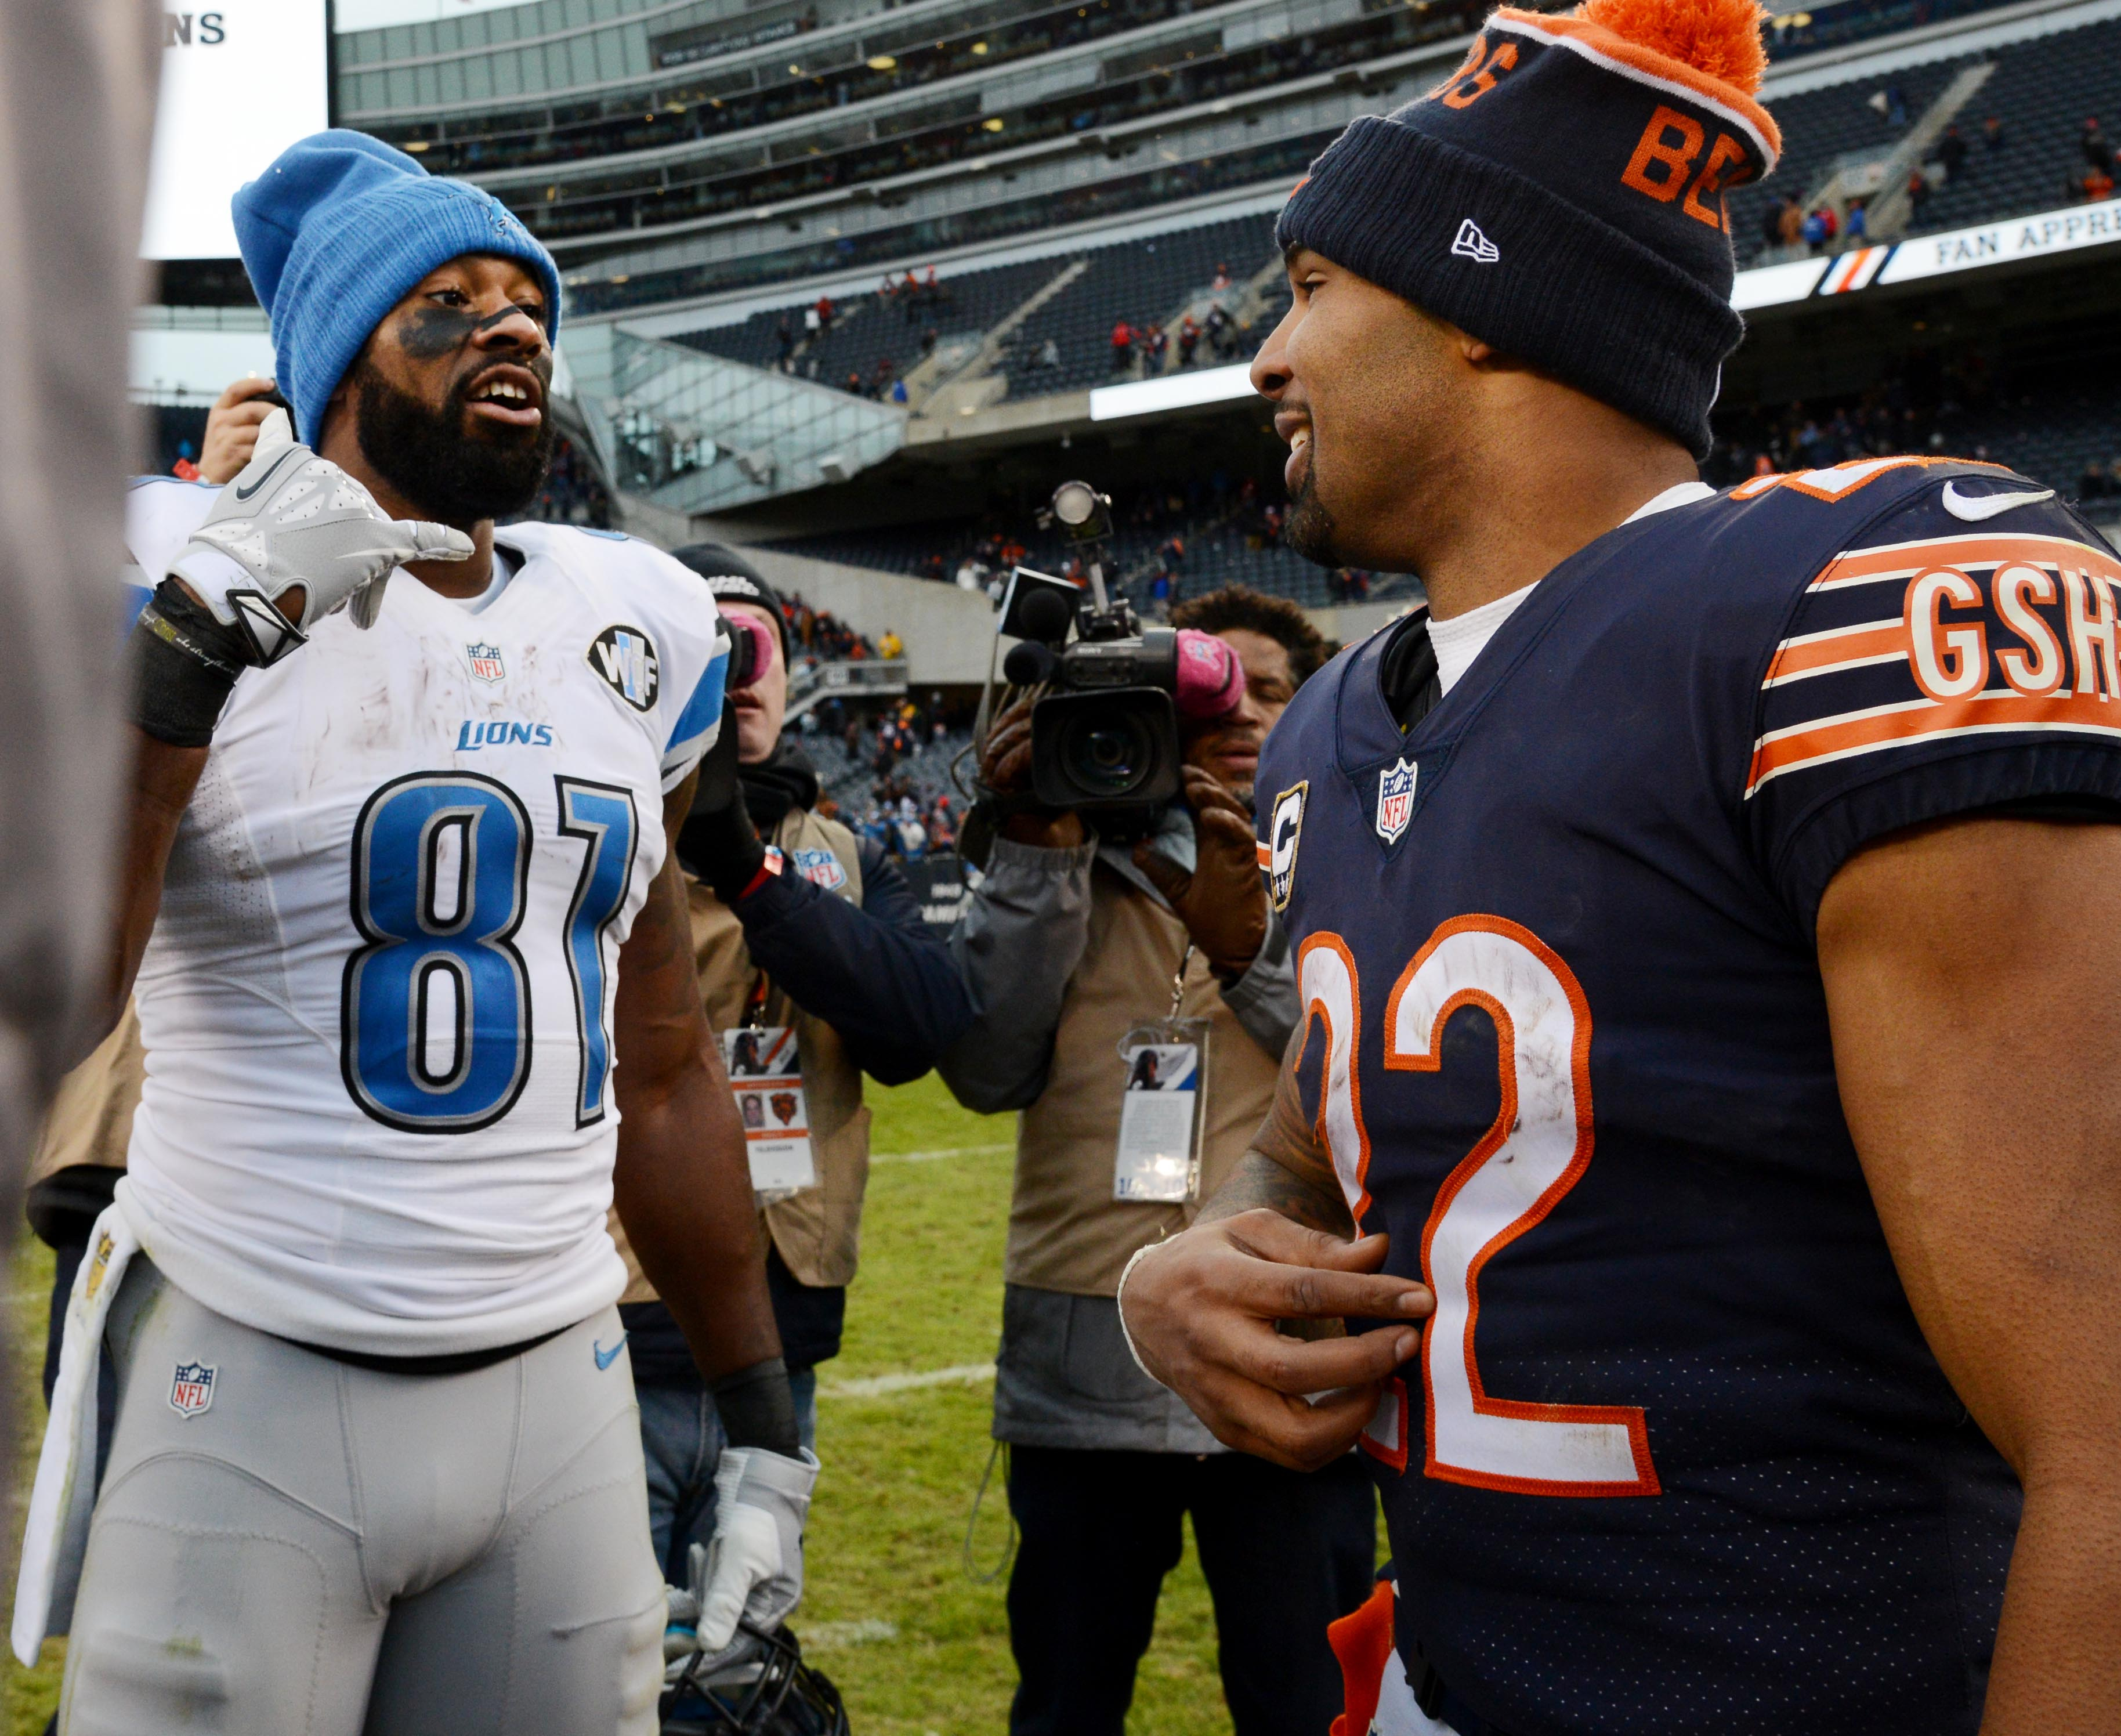 Chicago Bears running back Matt Forte and Detroit Lions wide receiver Calvin Johnson talks about getting together during the off season after an NFL football game, Sunday, Jan. 3, 2016, at Soldier Field in Chicago. (John Starks/Daily Herald via AP)